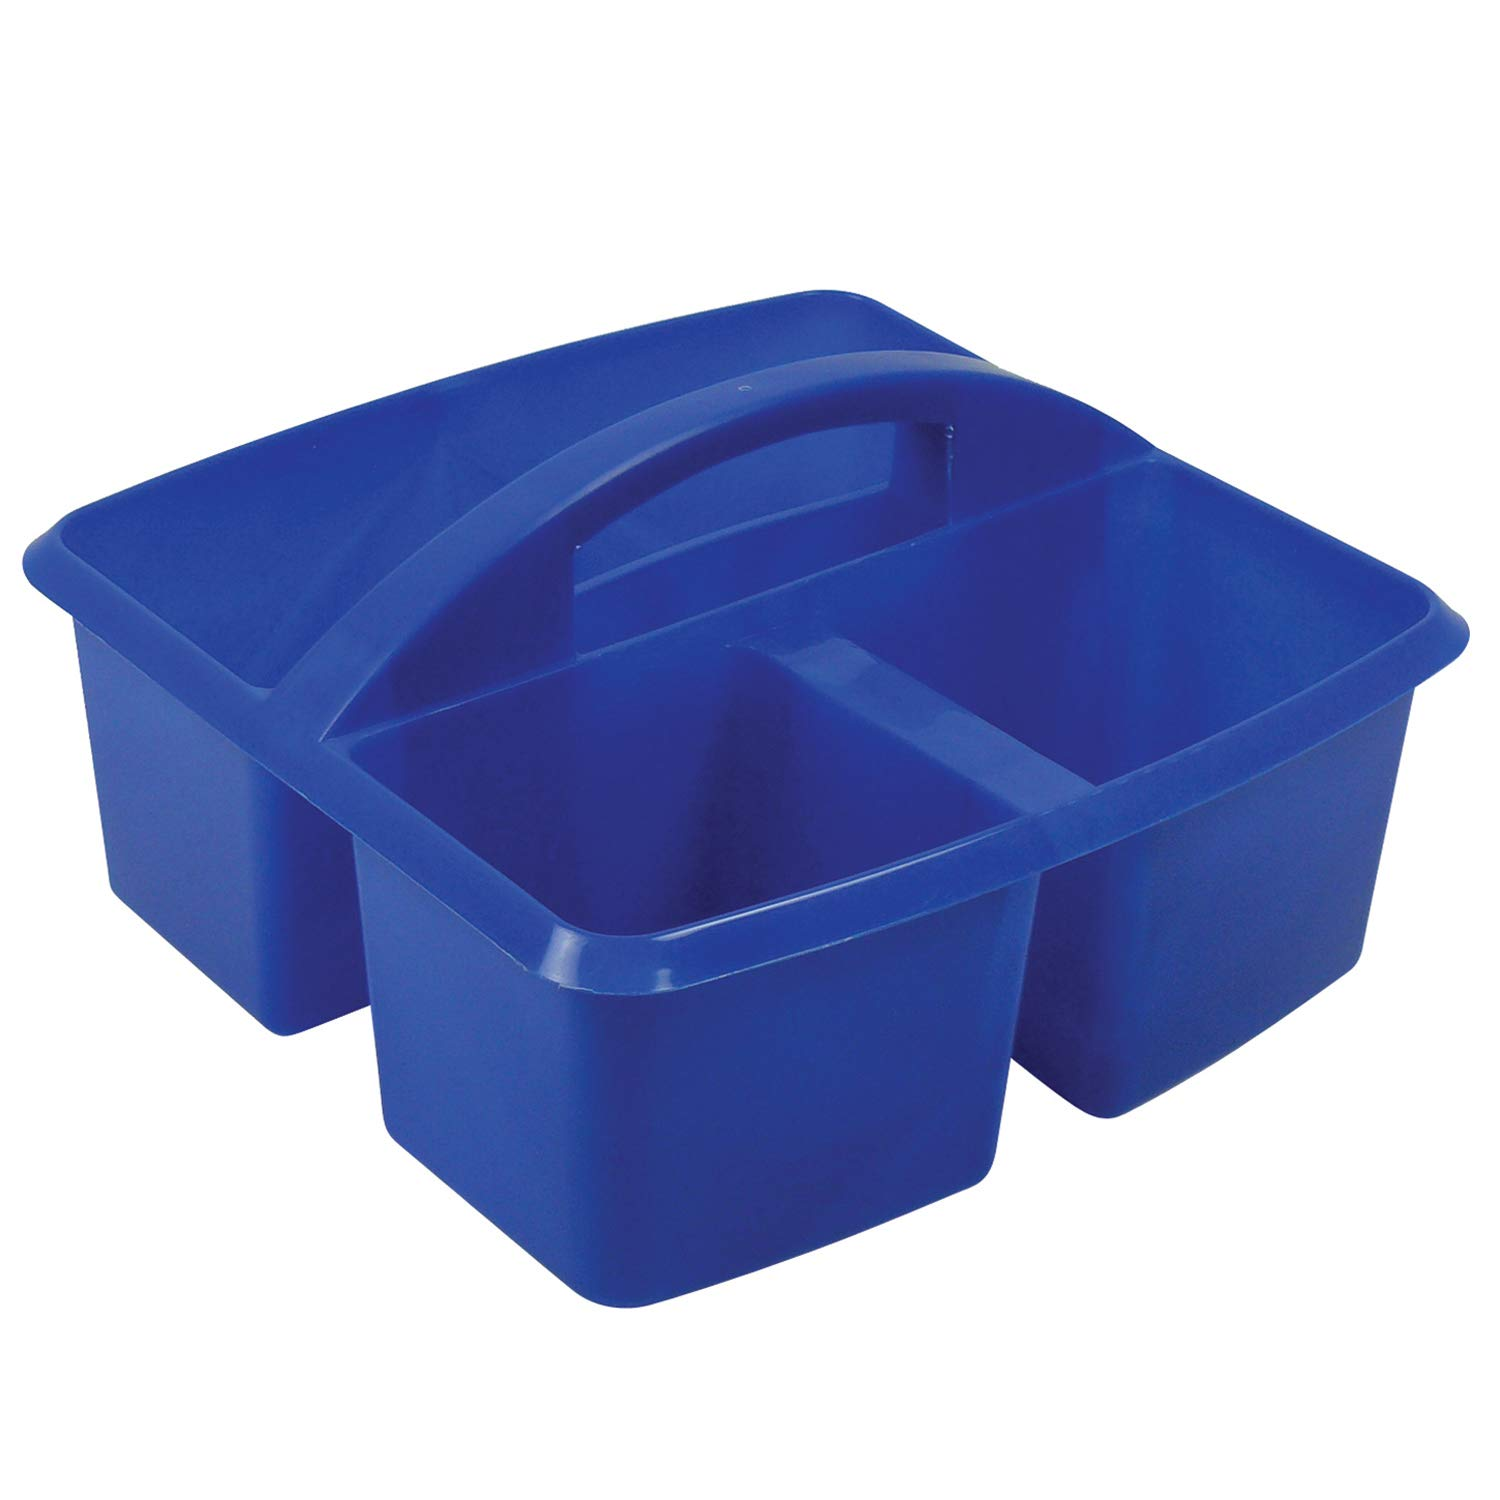 Romanoff Products ROM25904BN Small Utility Caddy, Blue, Pack of 6